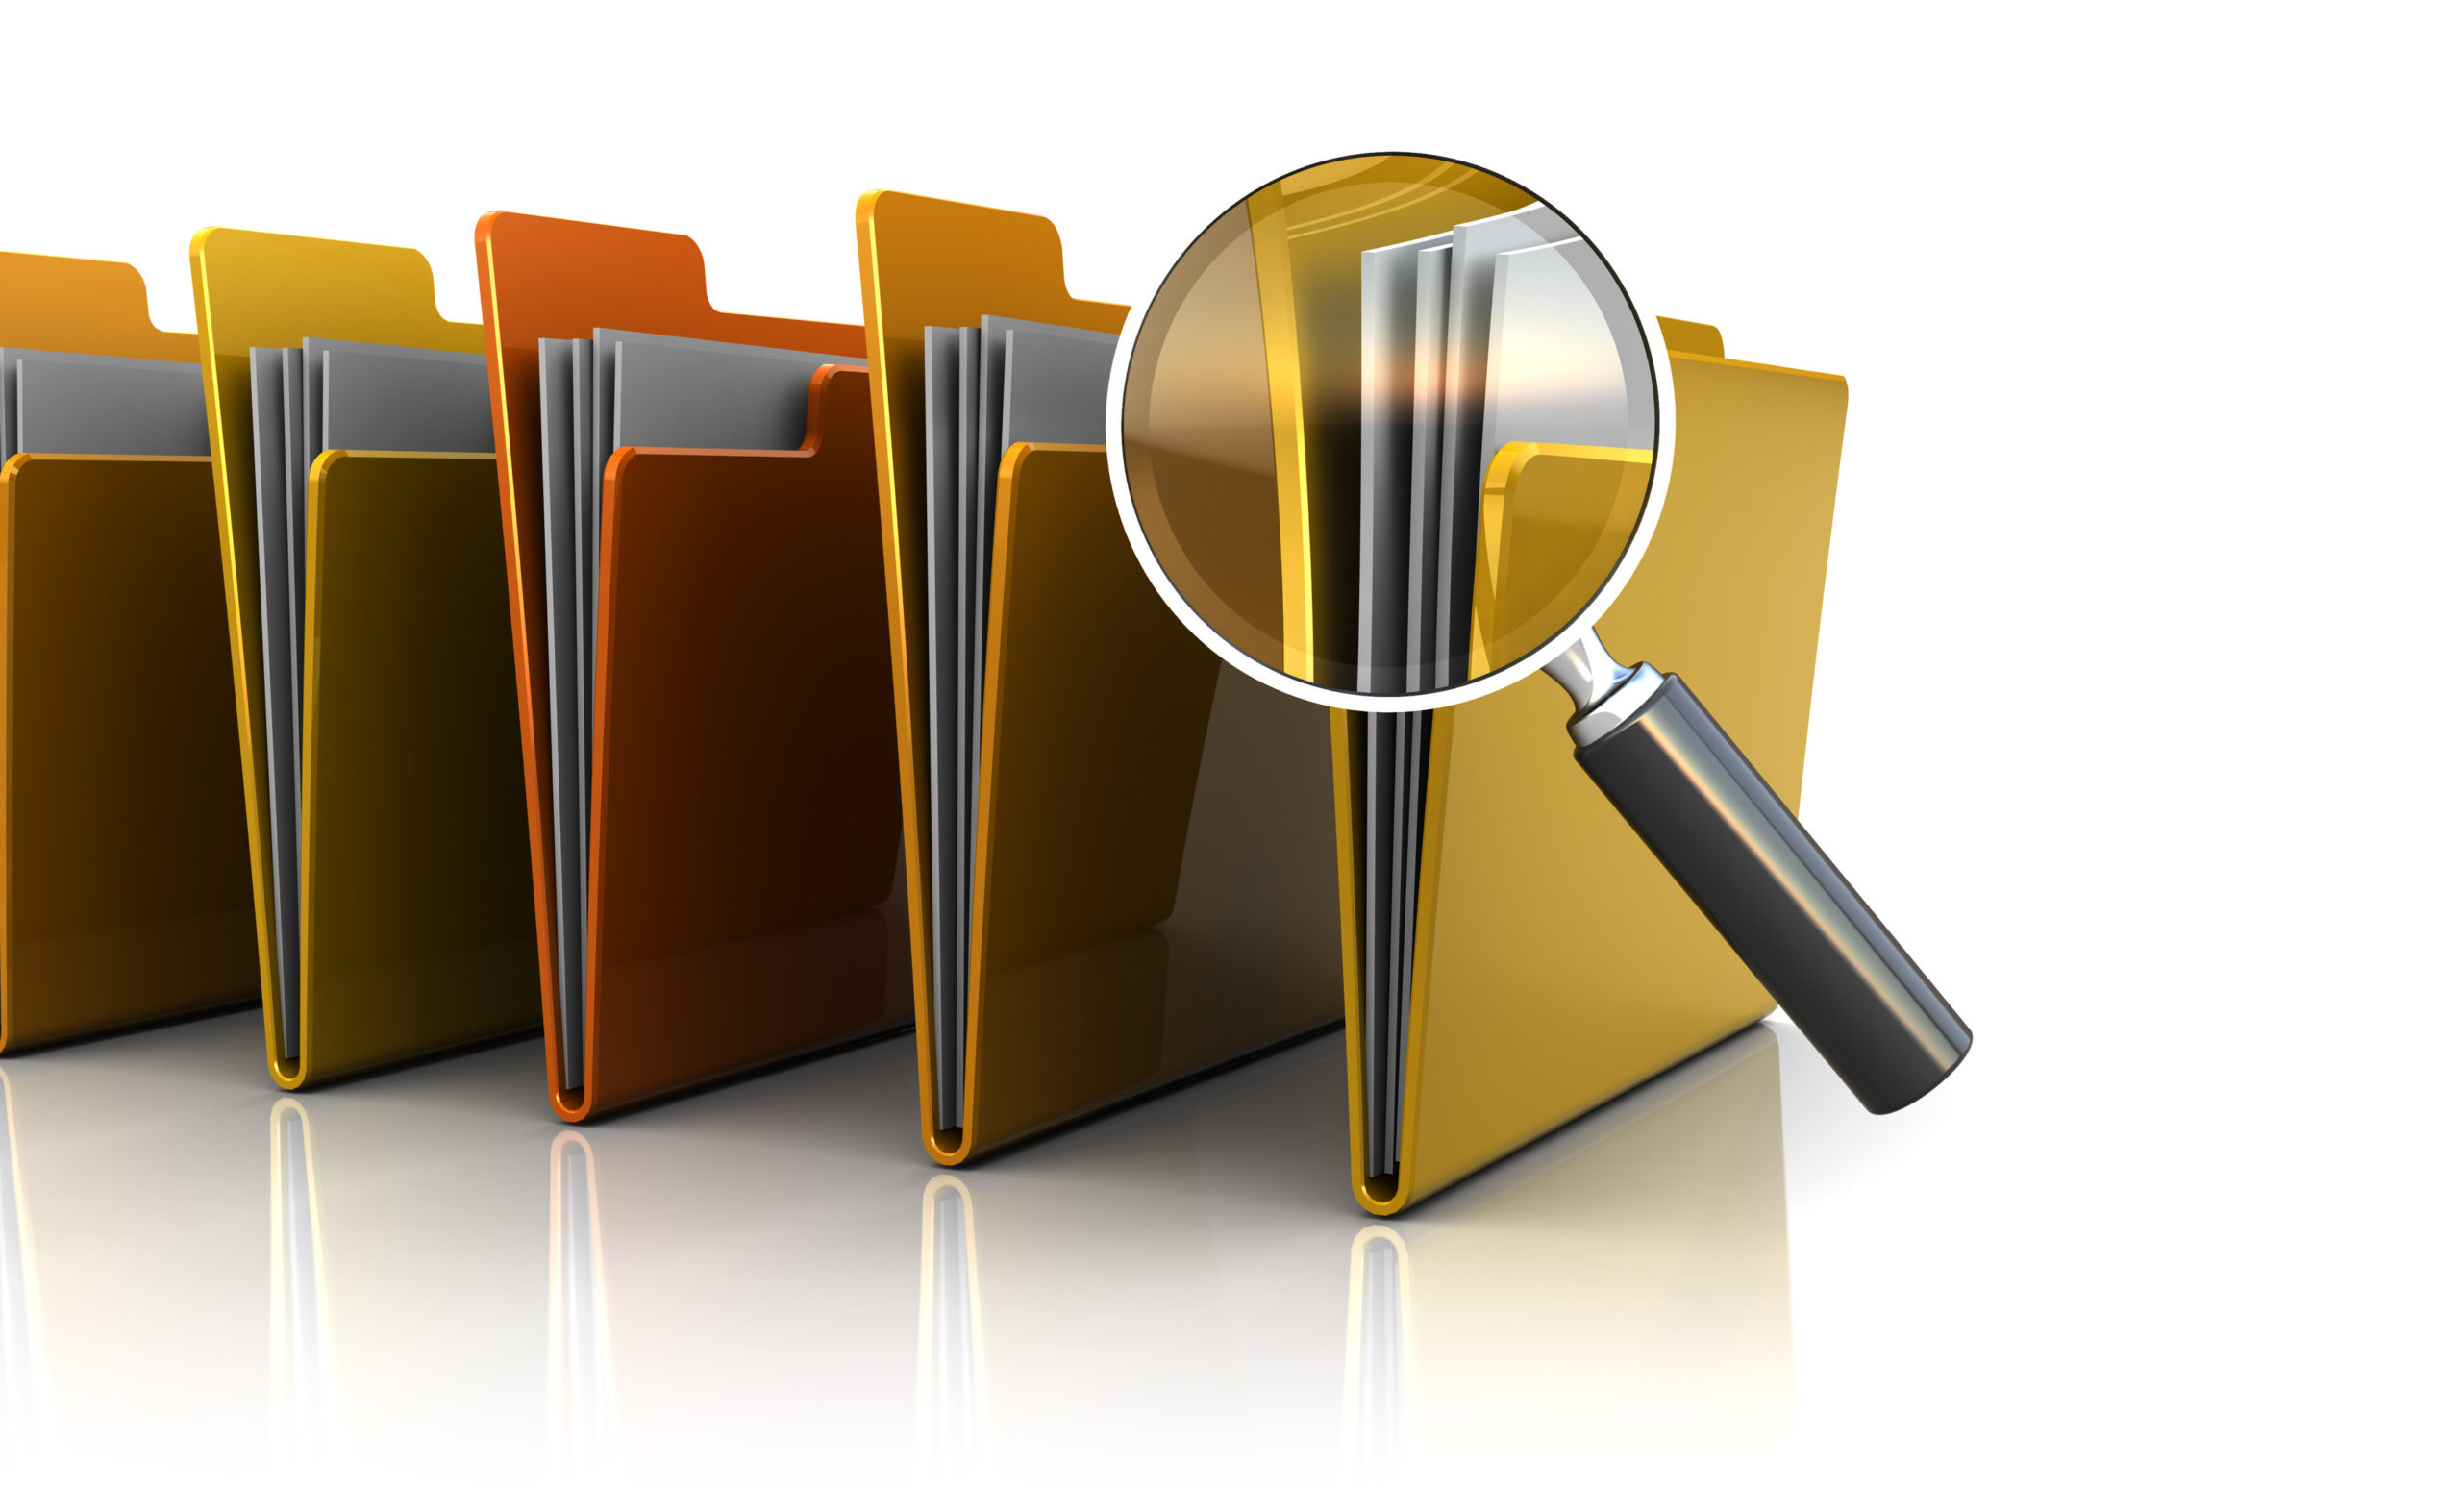 find-documents-image-order-id